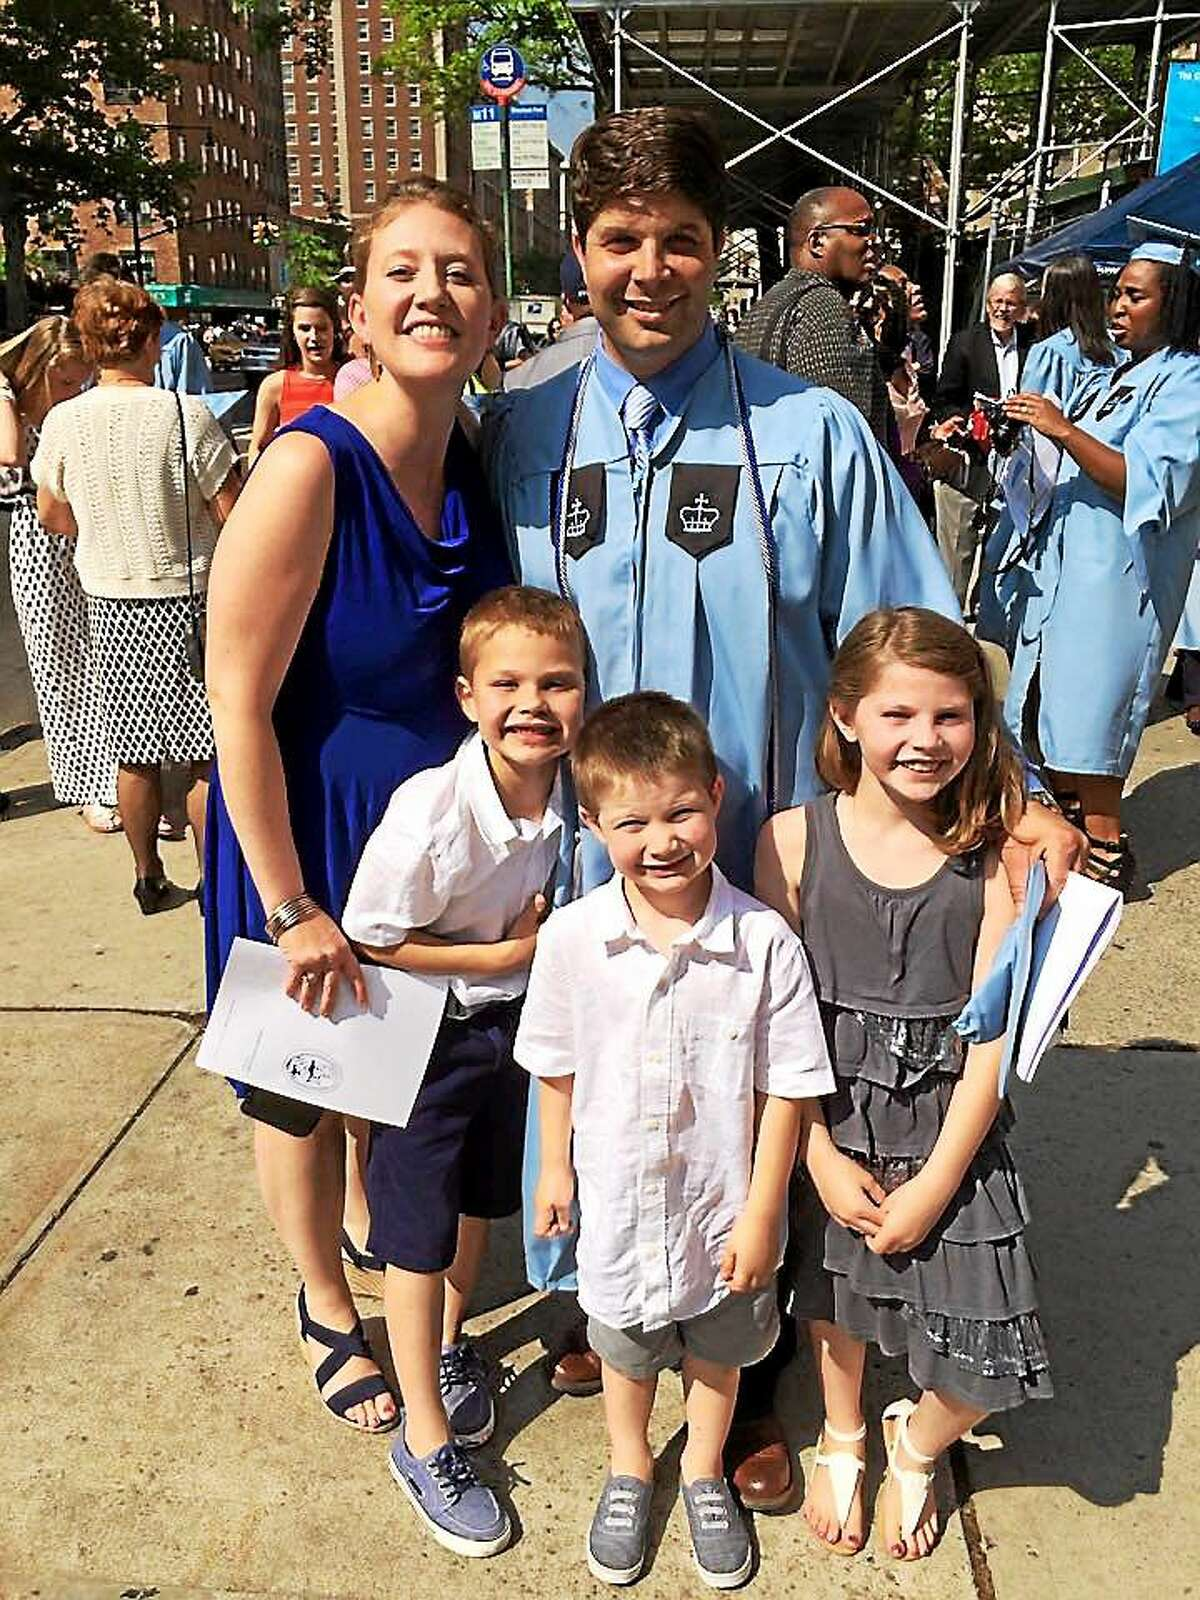 Middletown Mayor Dan Drew celebrates his advanced degree with his family at Columbia University.